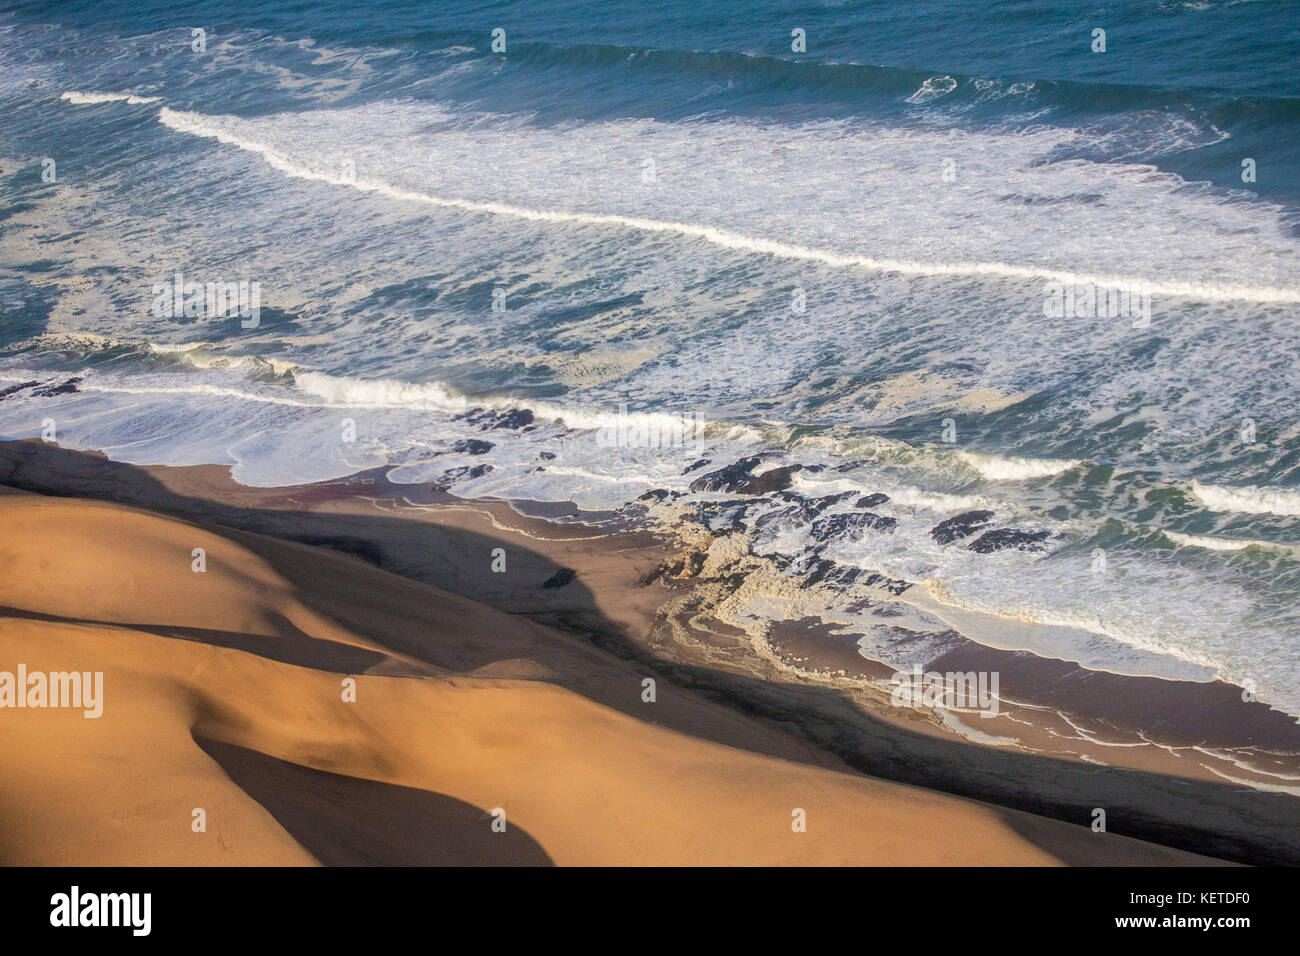 Aerial view of waves of the Atlantic Ocean crashing against the sandy dunes of the Namib desert Namibia Southern - Stock Image